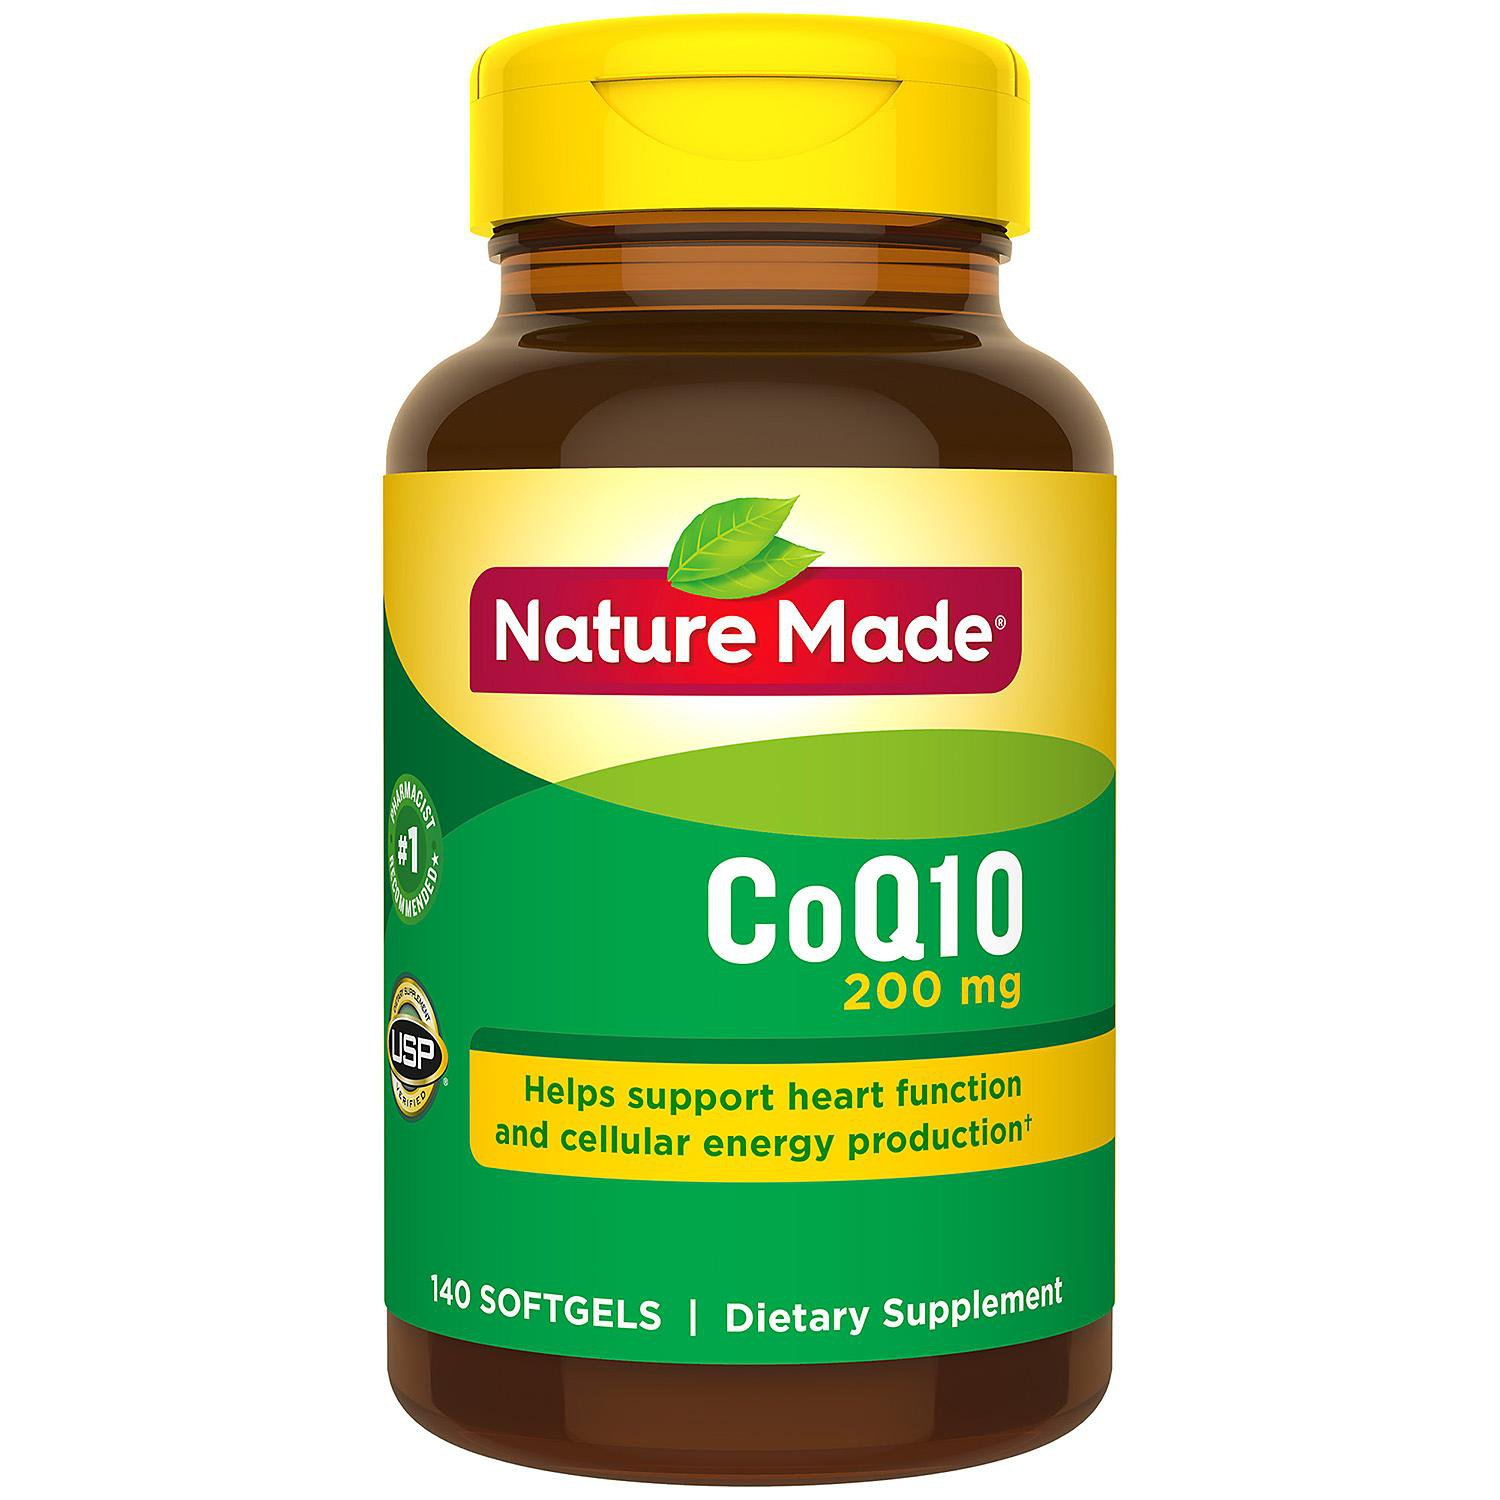 Nature Made CoQ10 200 mg Softgels (140 ct.)